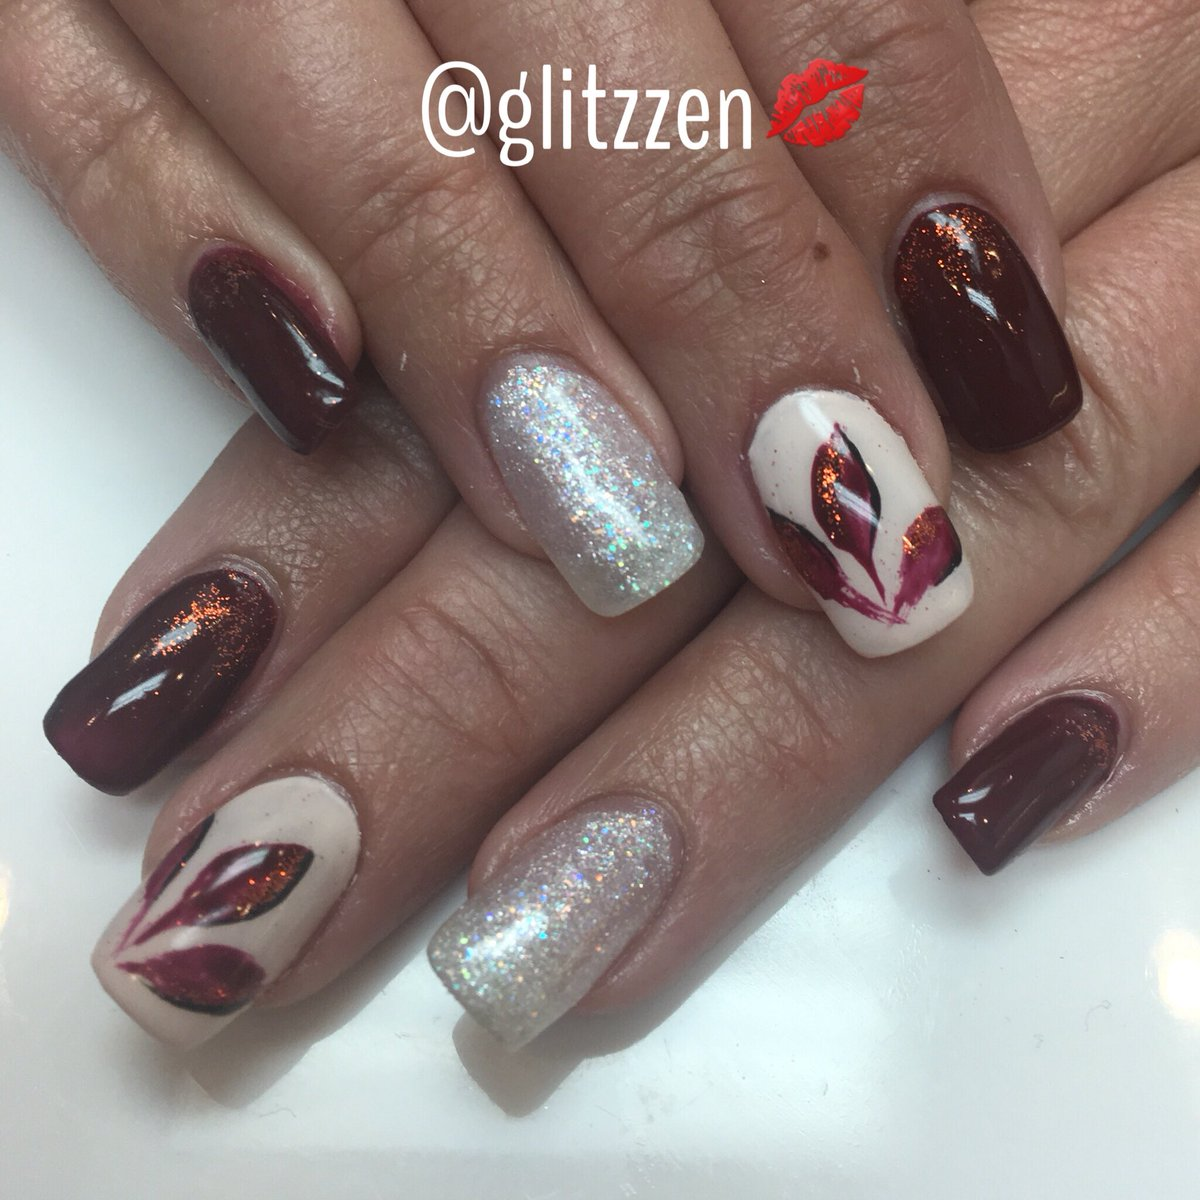 colorgel RT @glitzzen: #autumnnails...